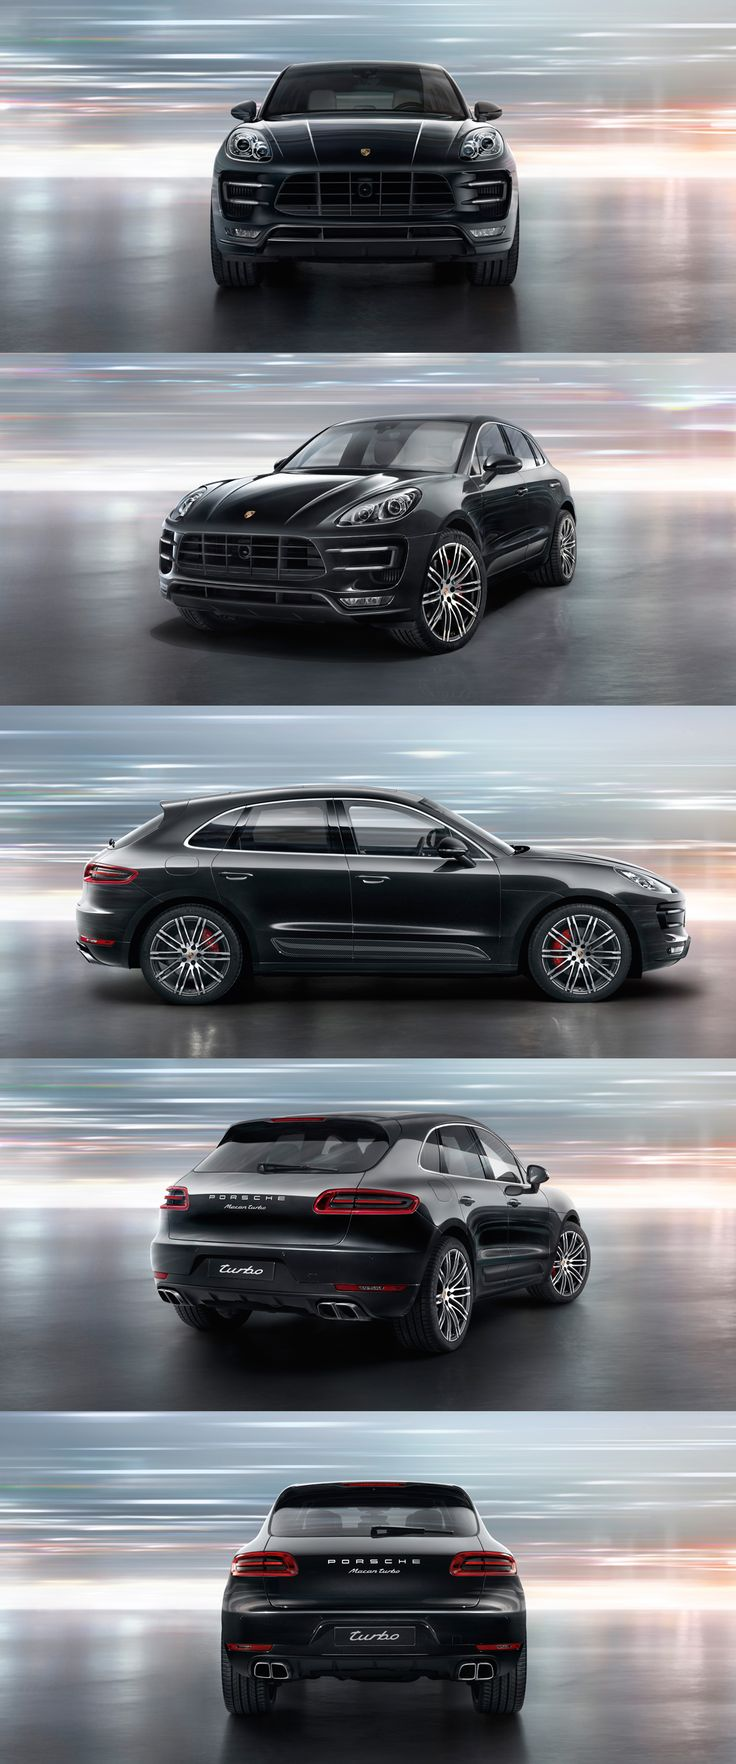 #PorscheMacan: Every design detail radiates one thing: intensely sporty style. Typically Porsche. Learn more: http://link.porsche.com/macan?pc=95BAXP1PINGA Combined fuel consumption in accordance with EU 5: 9.2-6.1 (46.3-30.7); CO2 emissions: 216-159 g/km.